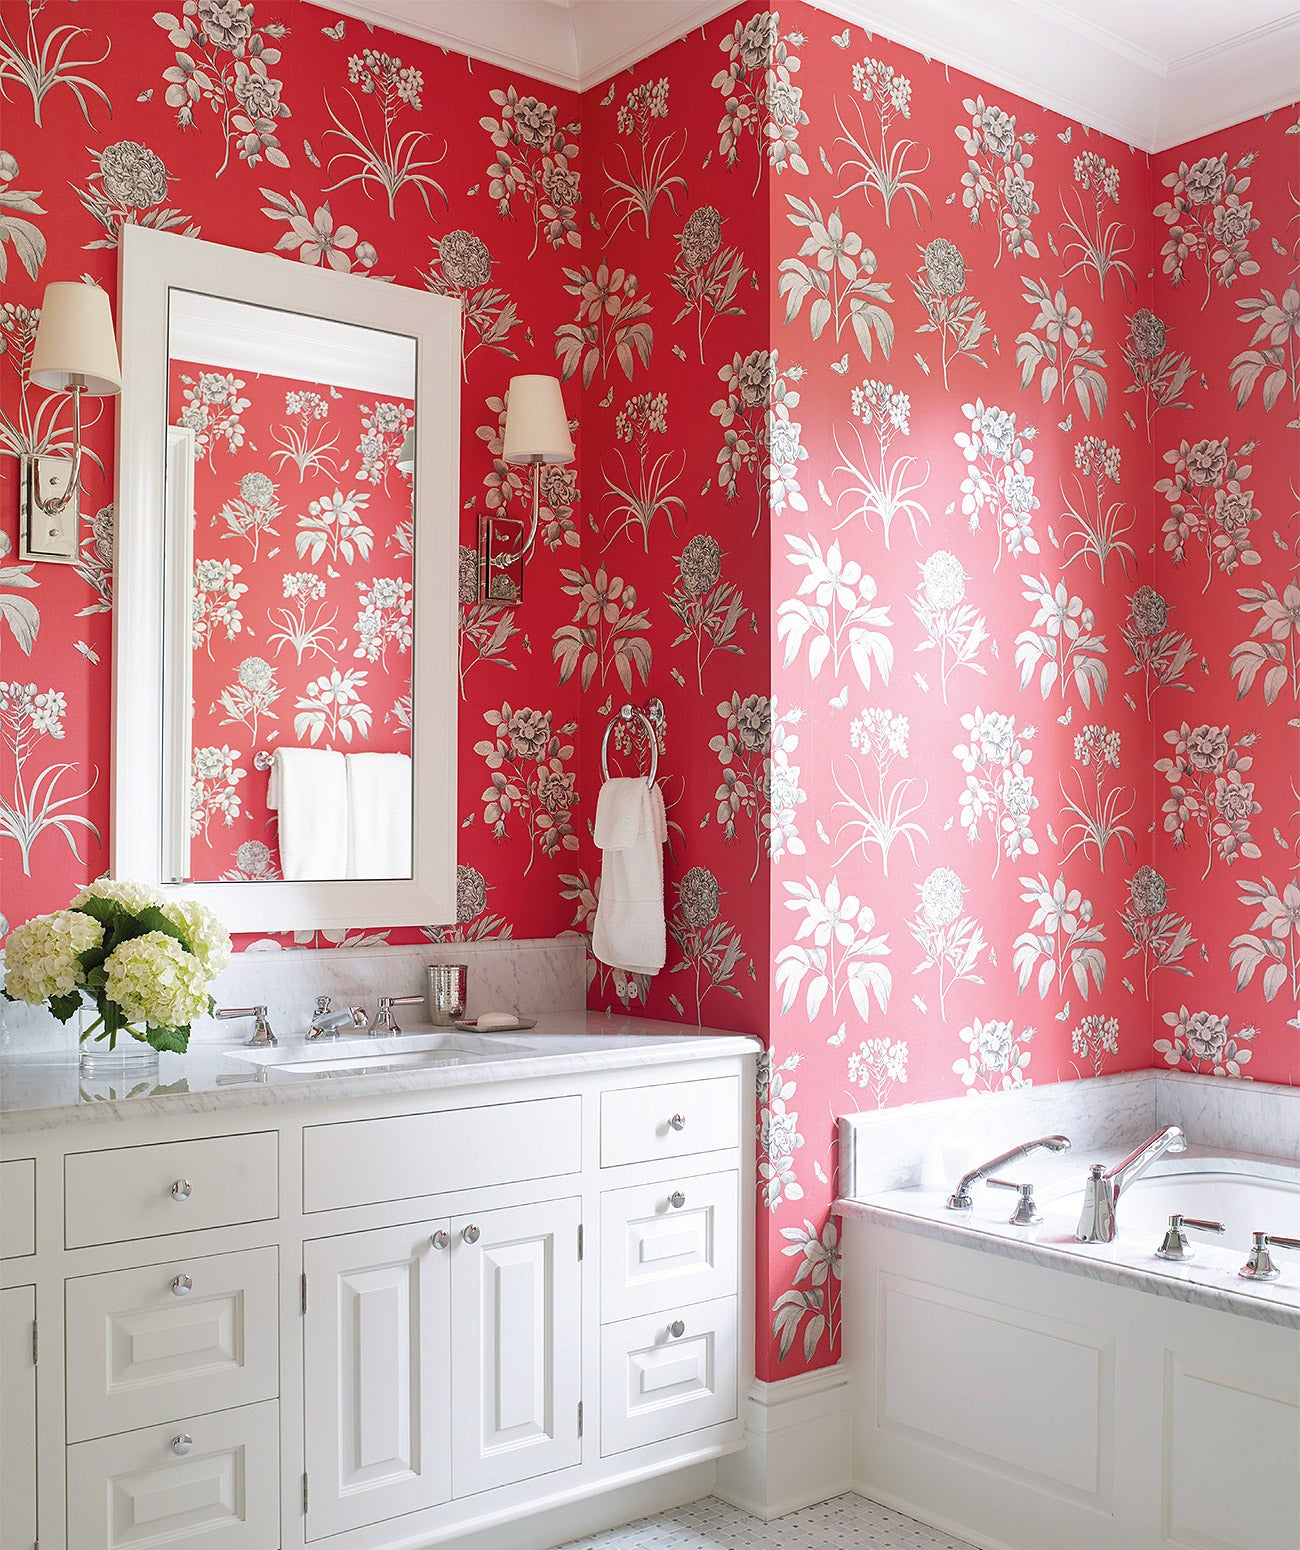 A pink floral-printed bathroom/Photography: Tria Giovan